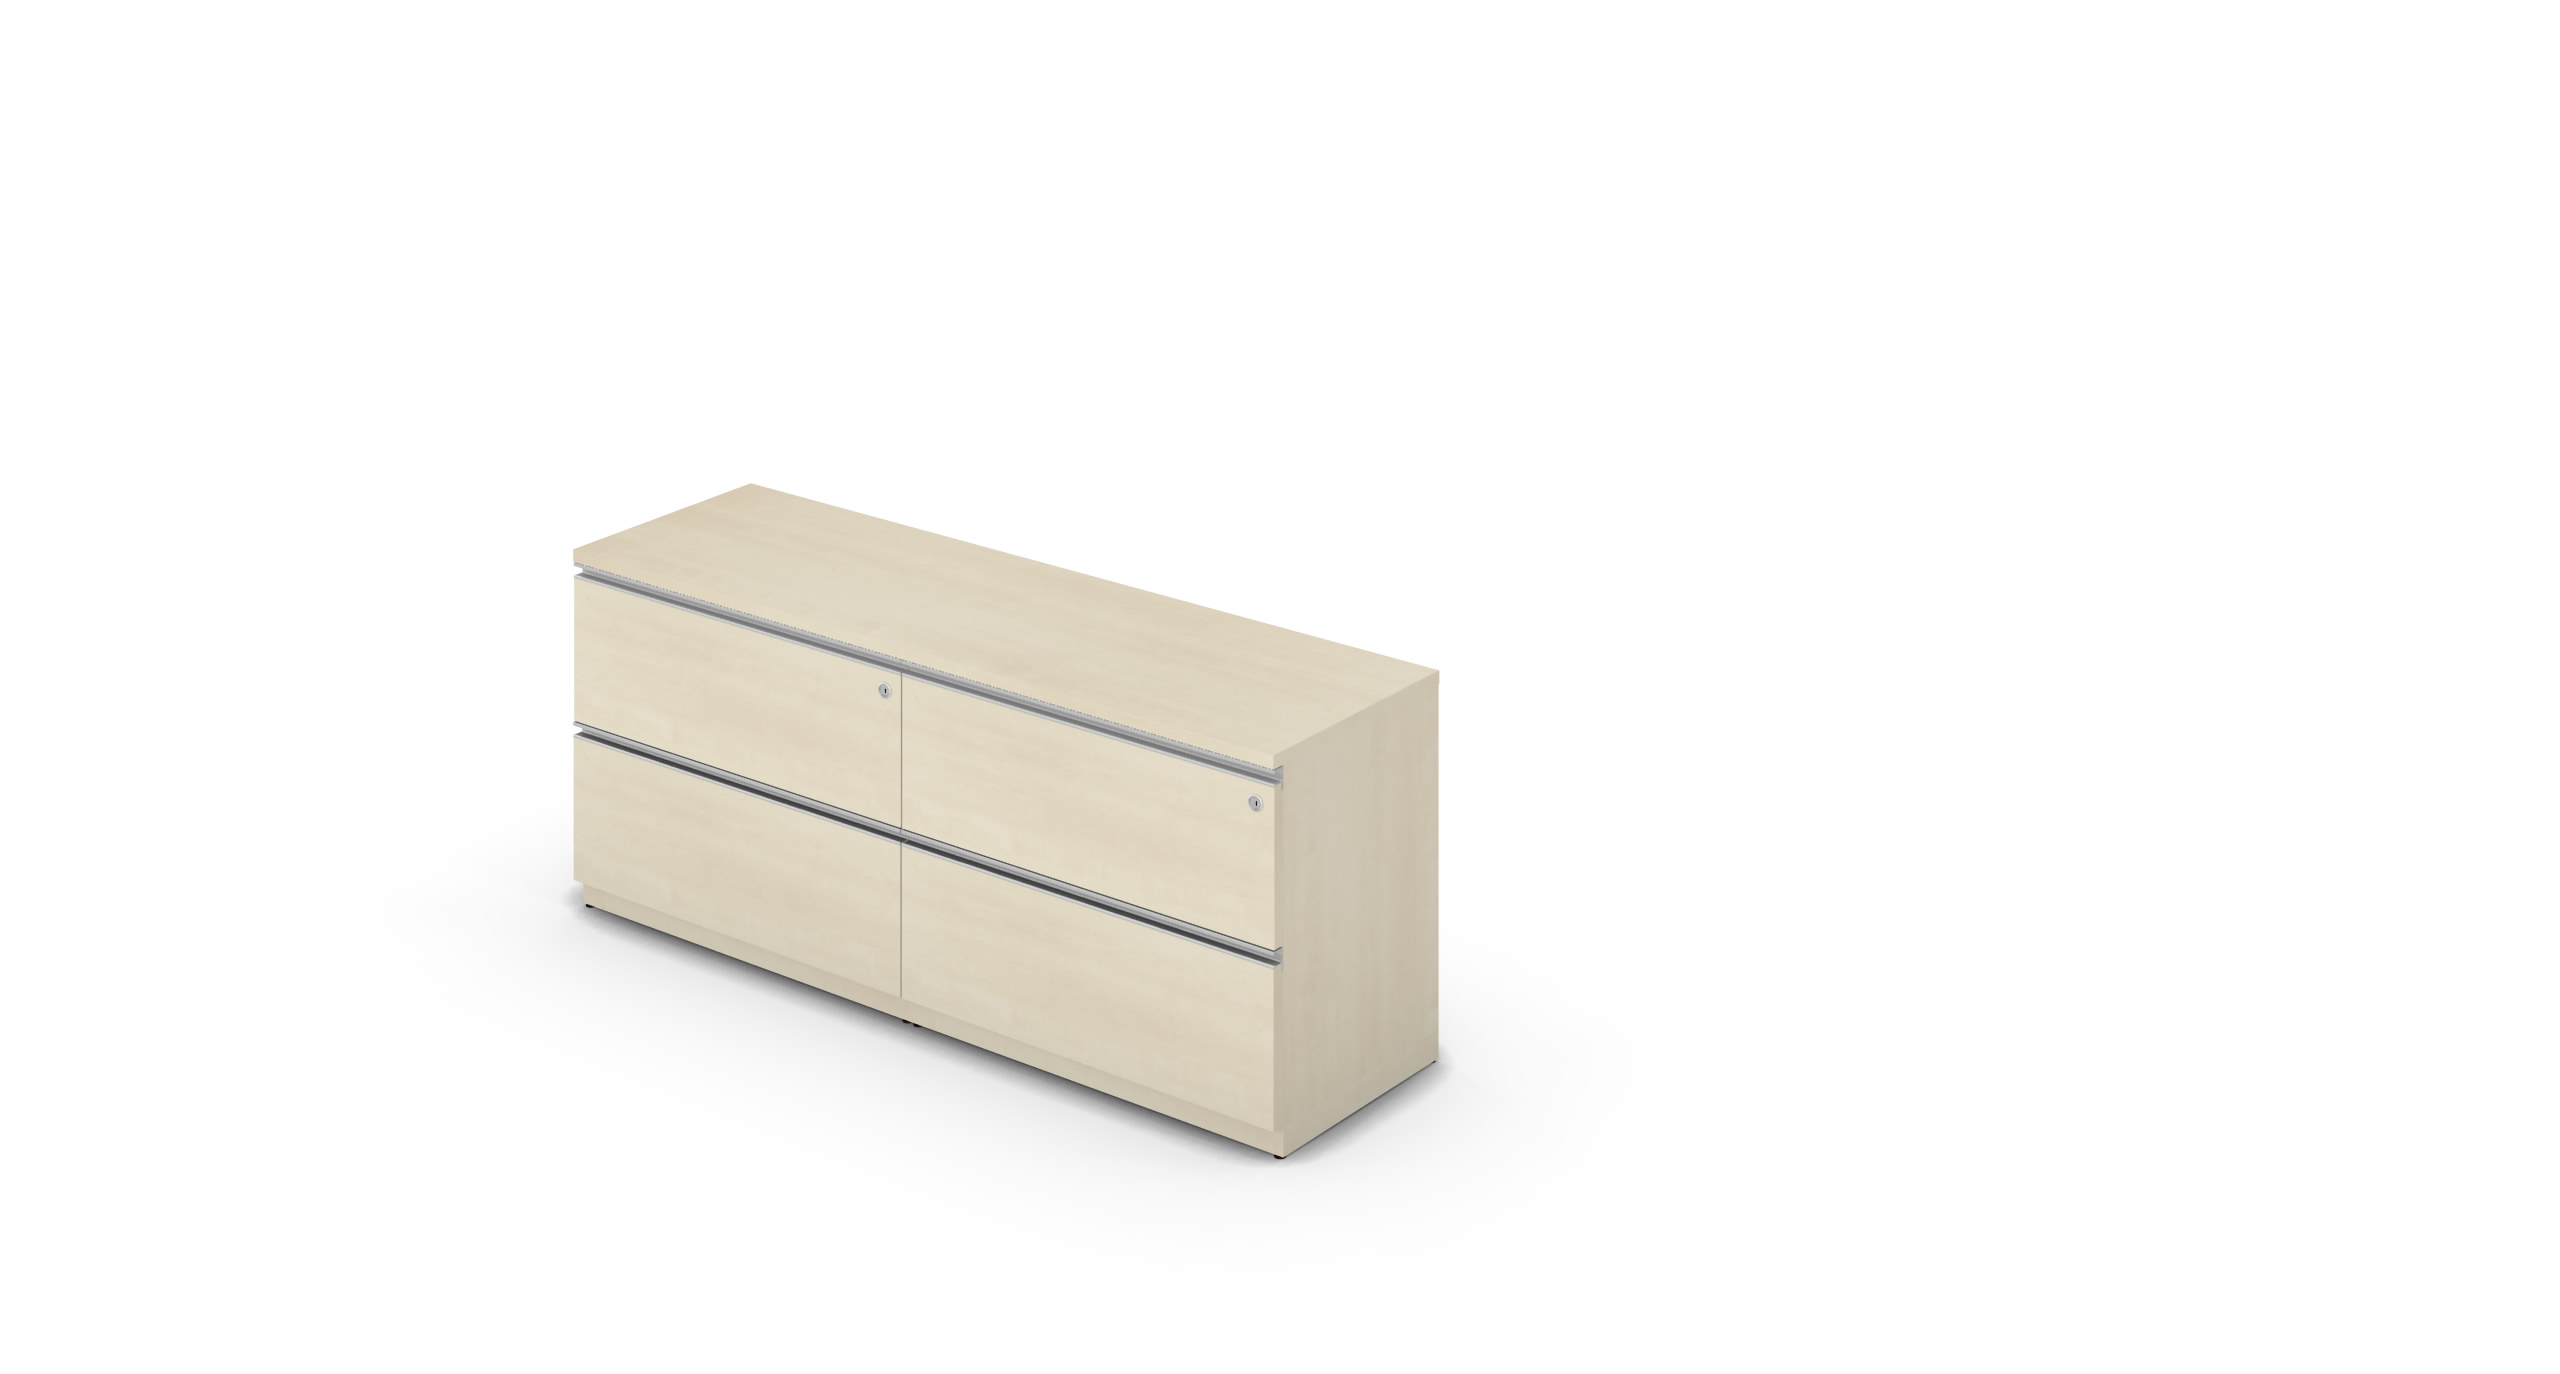 Credenza_1600_Box_2D_Maple_Rail_withCylinder